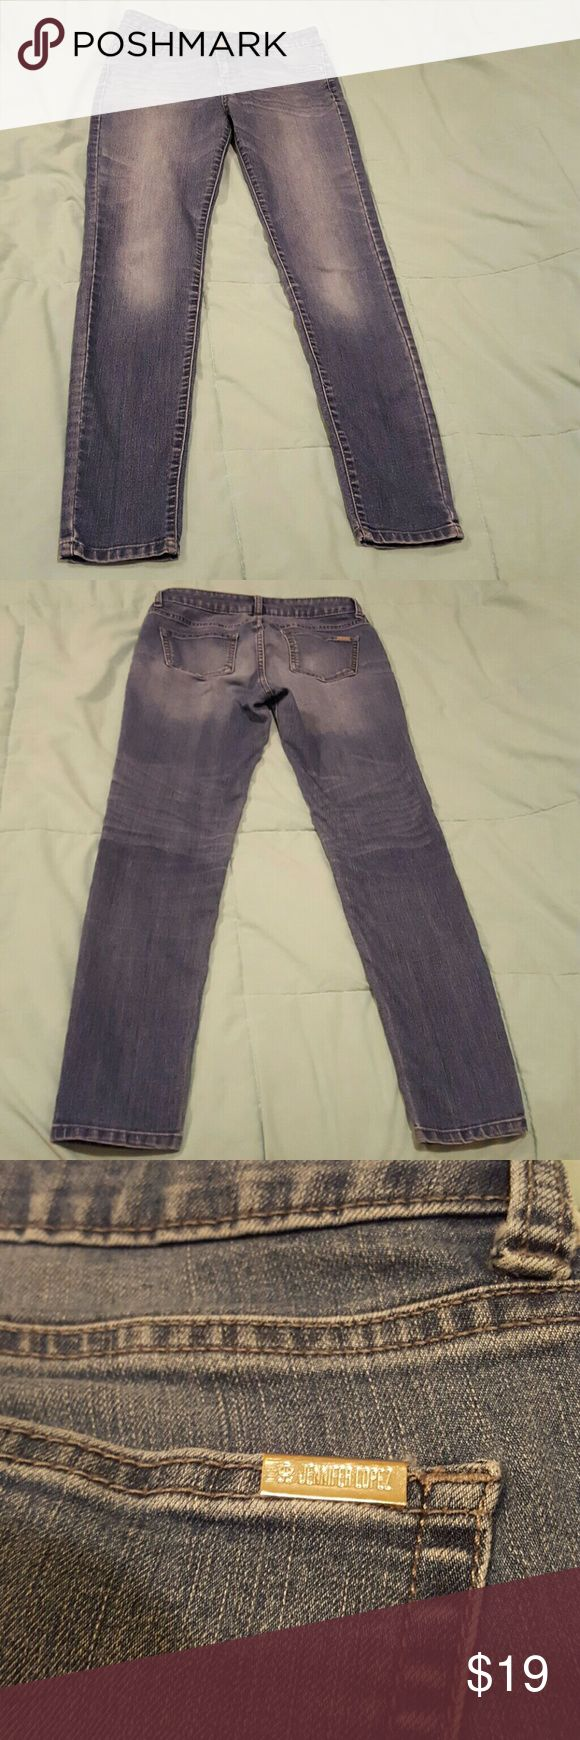 "J Lo Jeans ?? Waist appx 32"" ?? Inseam appx 30"" ?? Very comfortable & stylish ??Bundle 2 or more items for 20% off?? Jennifer Lopez Jeans"